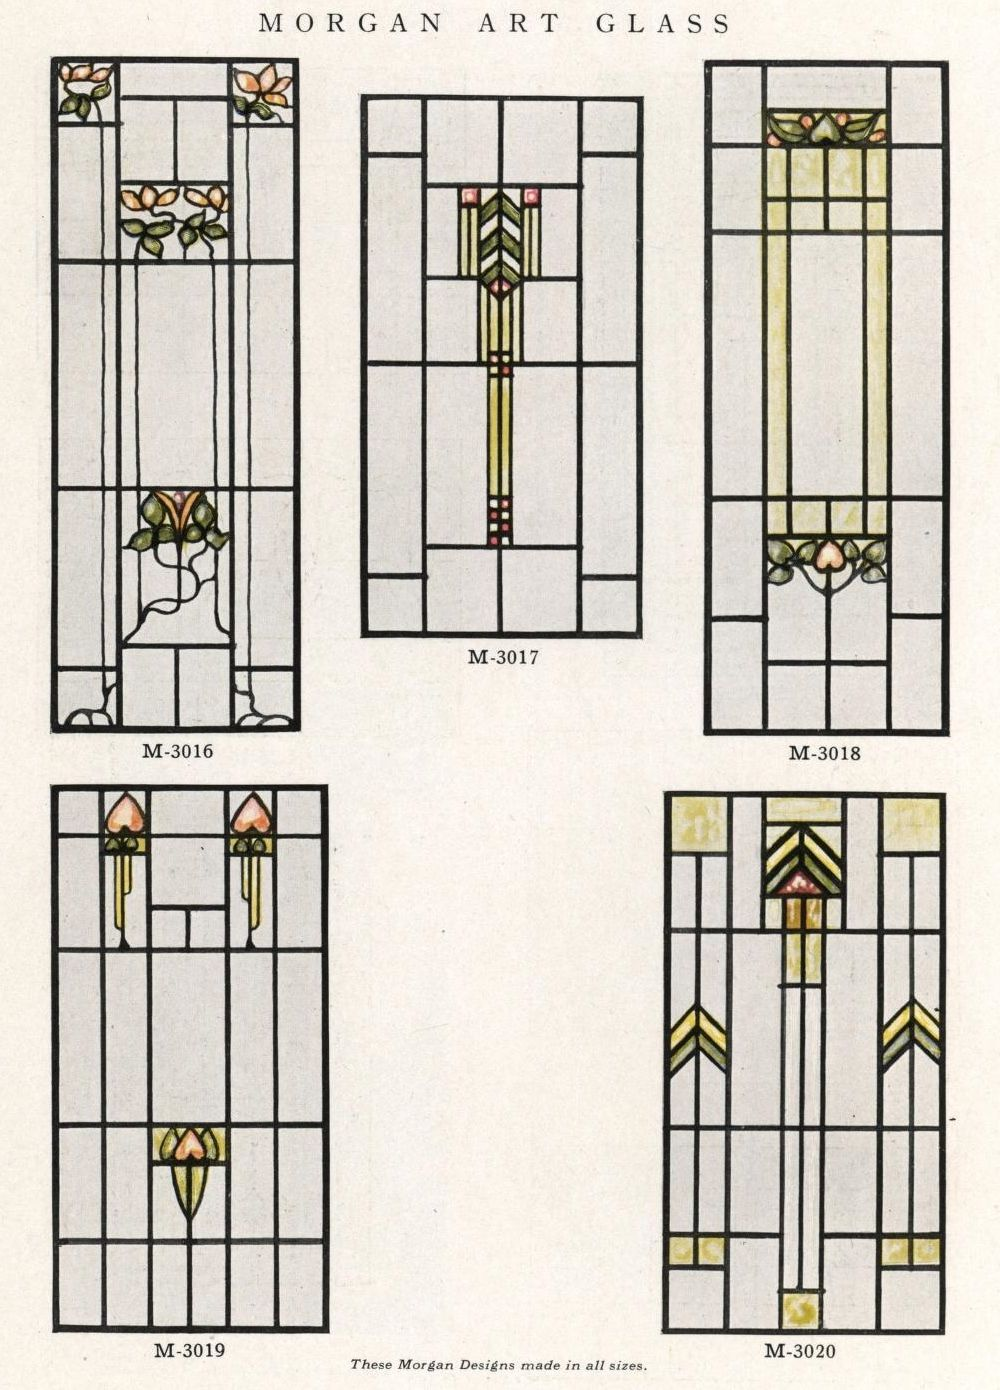 Stained glass window designs 1921 architecture for Architectural window designs